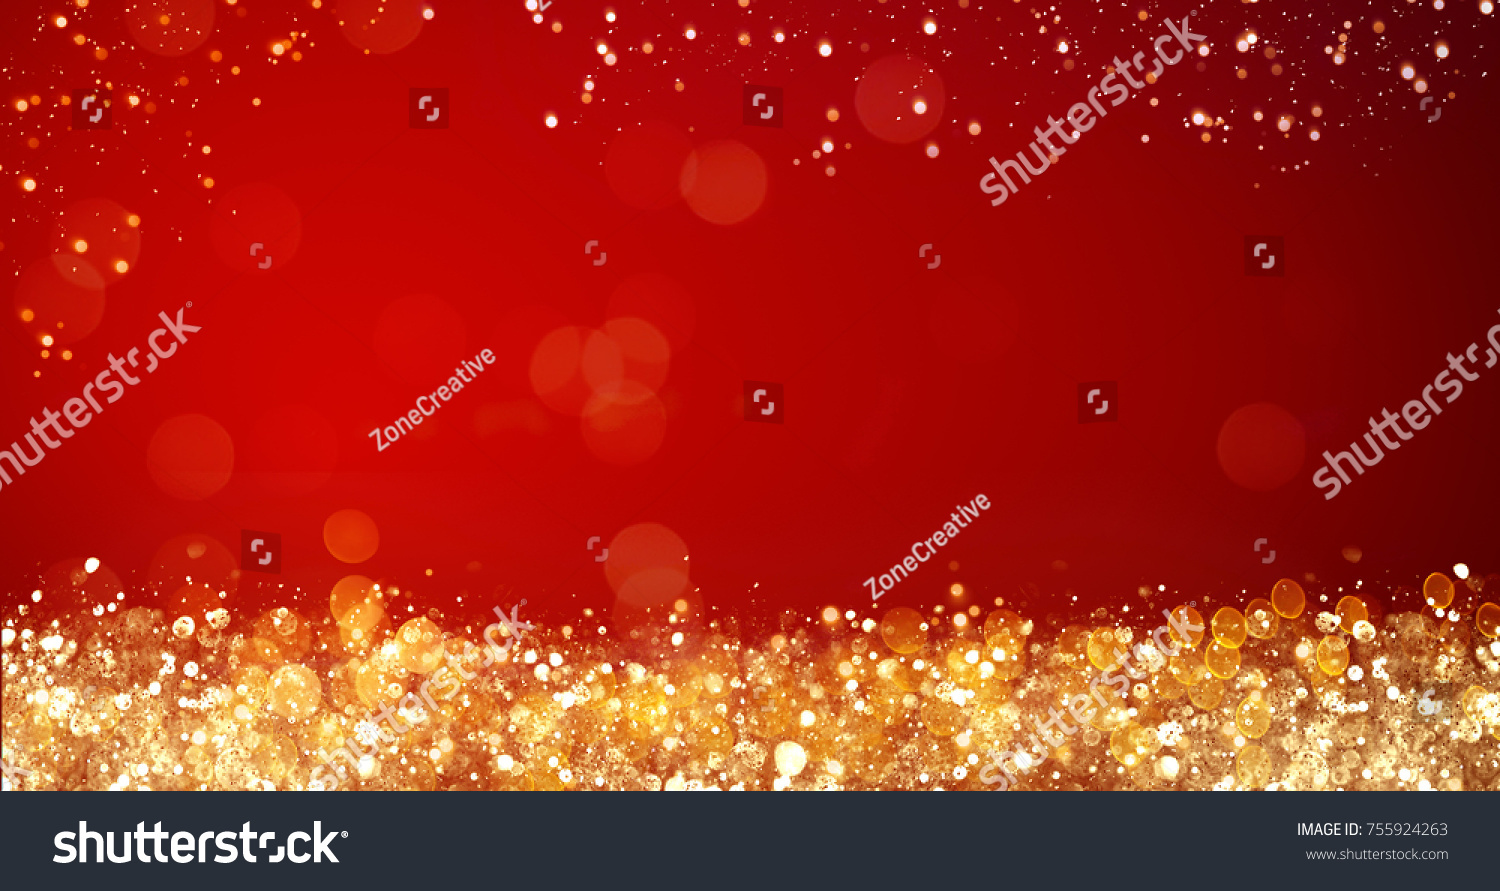 Golden silver xmas lights on red stock photo 755924263 shutterstock golden and silver xmas lights on red background for merry christmas or season greetings message kristyandbryce Gallery